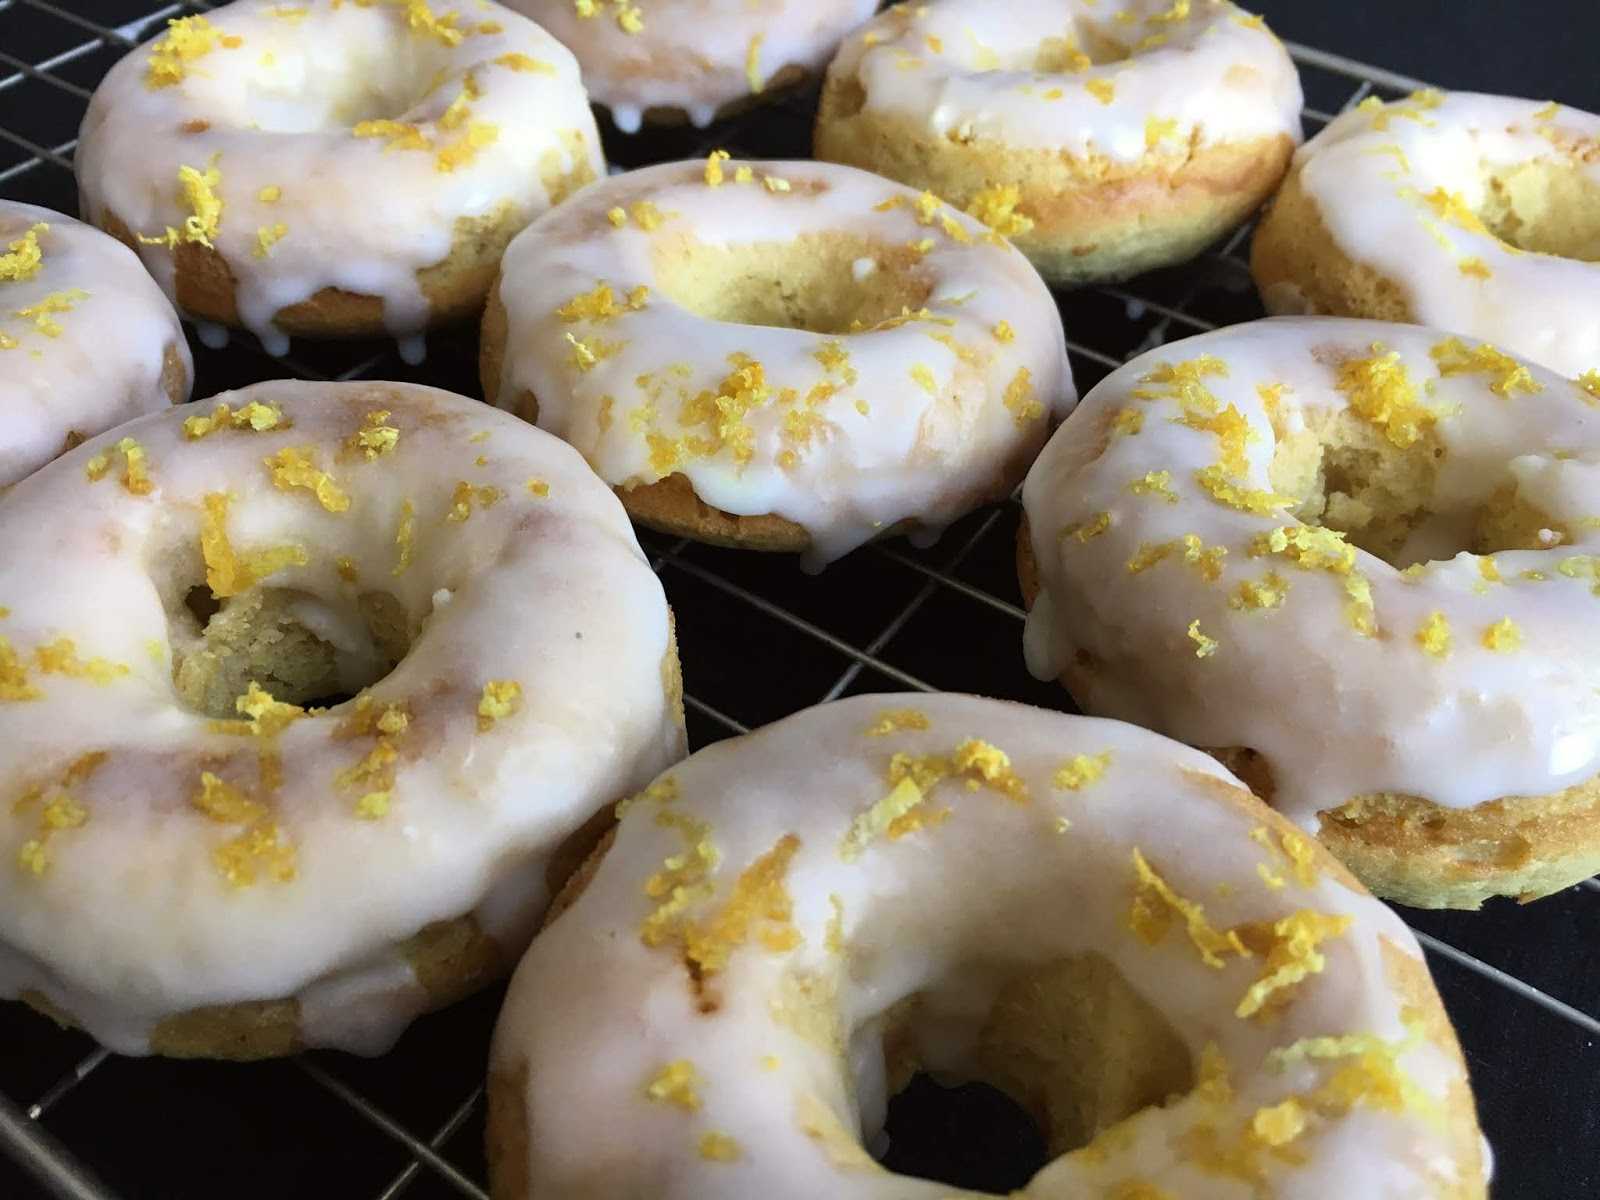 Glazed Lemon Donuts (Vegan)